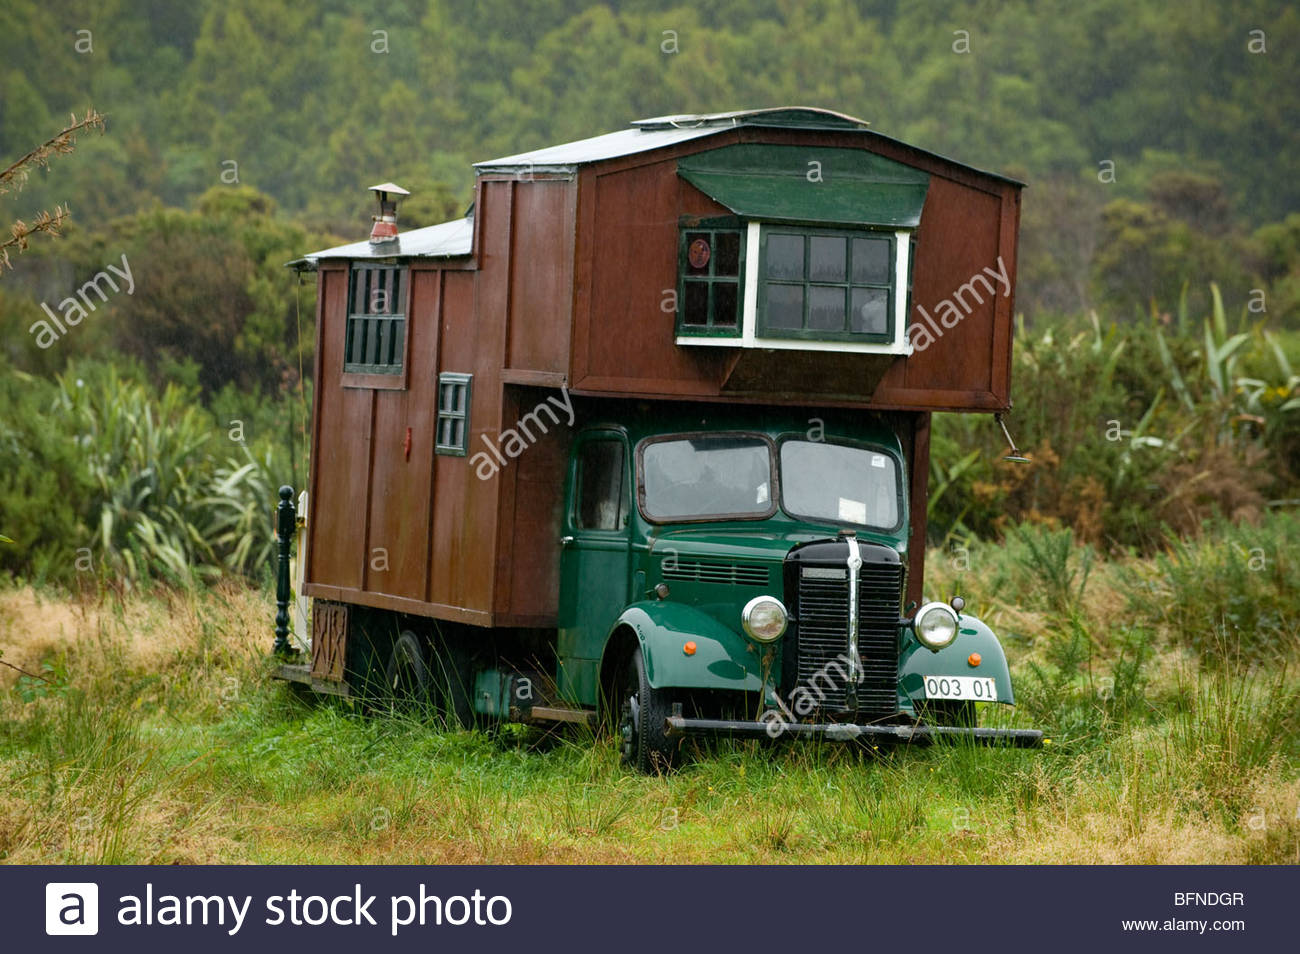 A Kiwi version of a motor home called a house bus. Stock Photo